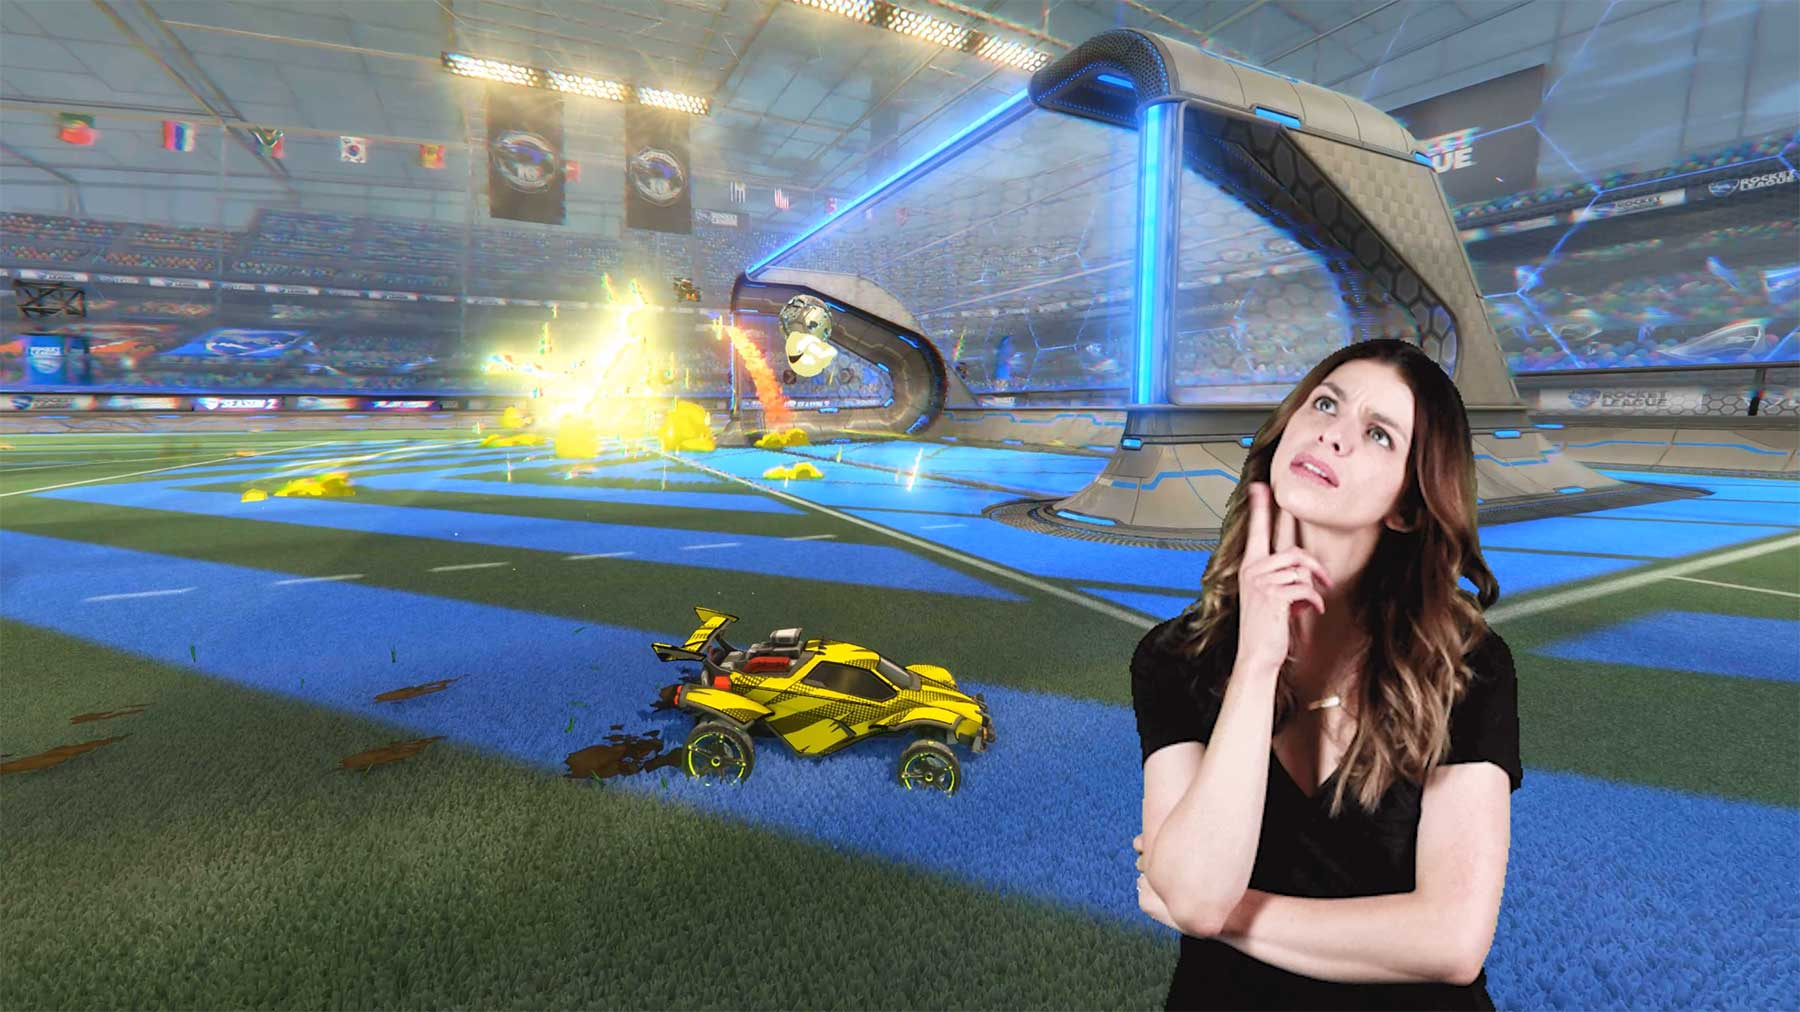 Rocket League: Guess the Speed 3 rocket-league-geschwindigkeit-schaetzen